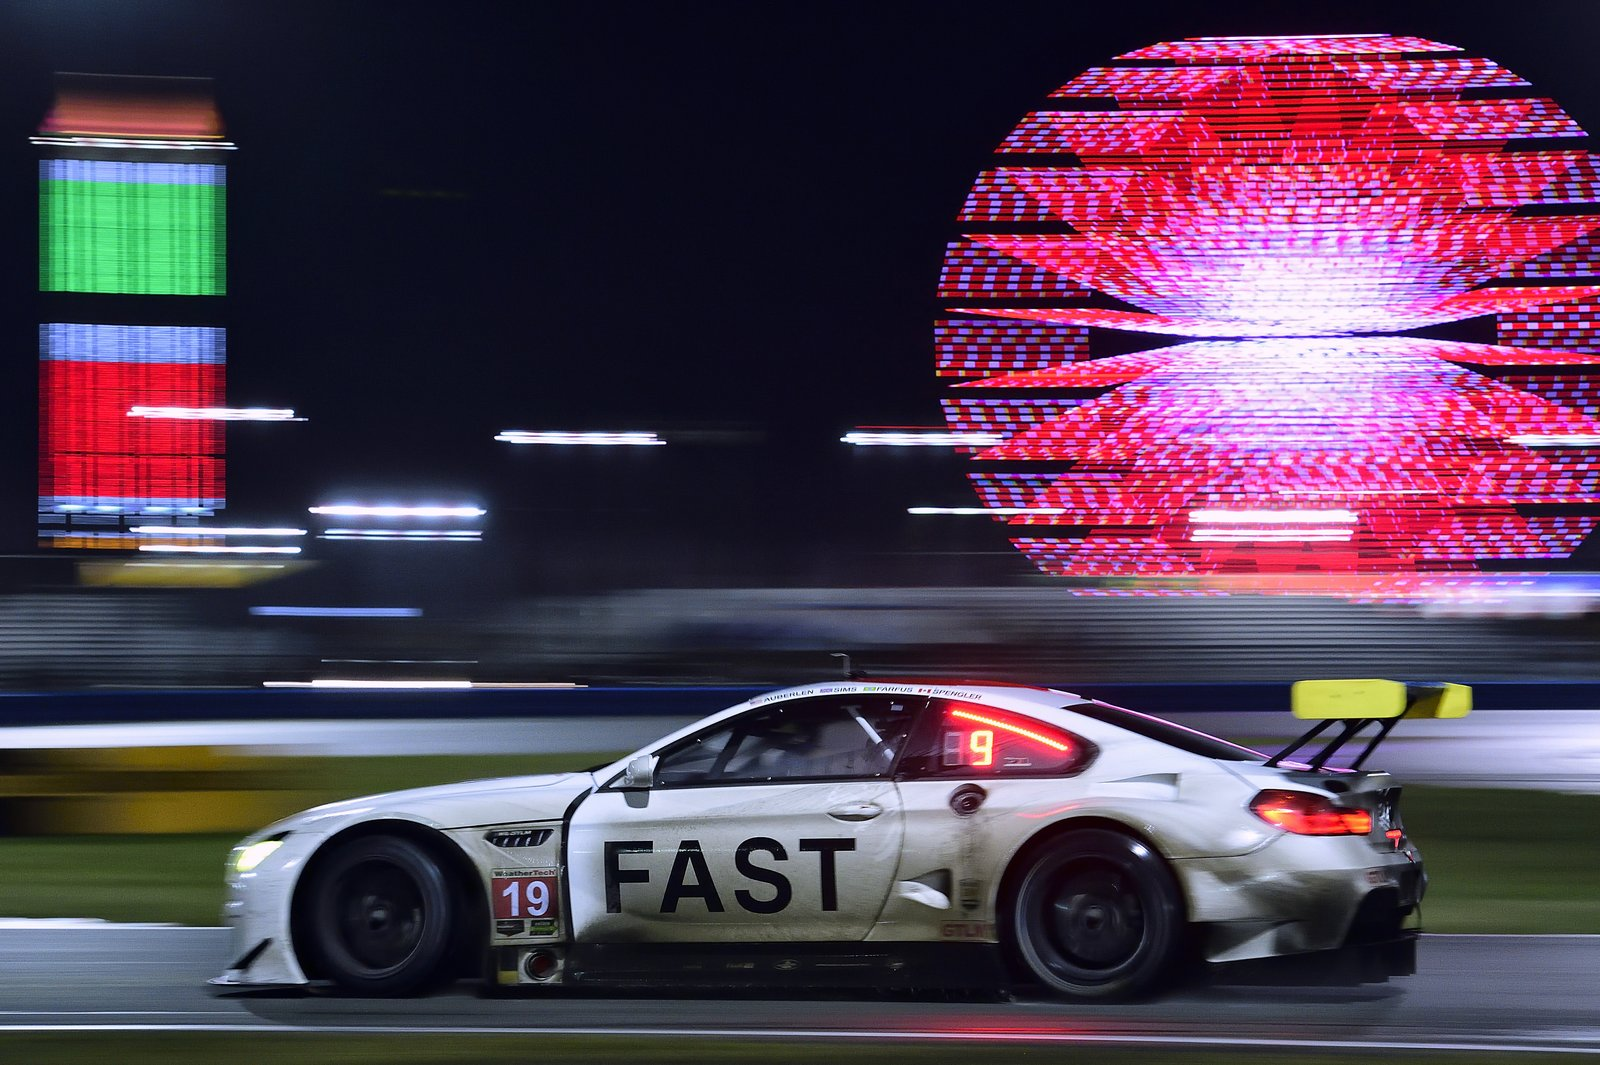 Night falls, the track is slick with rain, and the atmosphere of the infield grows more delirious as fans stay up to watch the race unfold.  Photo 10 of 12 in John Baldessari Blazes a Trail at the Daytona International Speedway With BMW Art Car #19